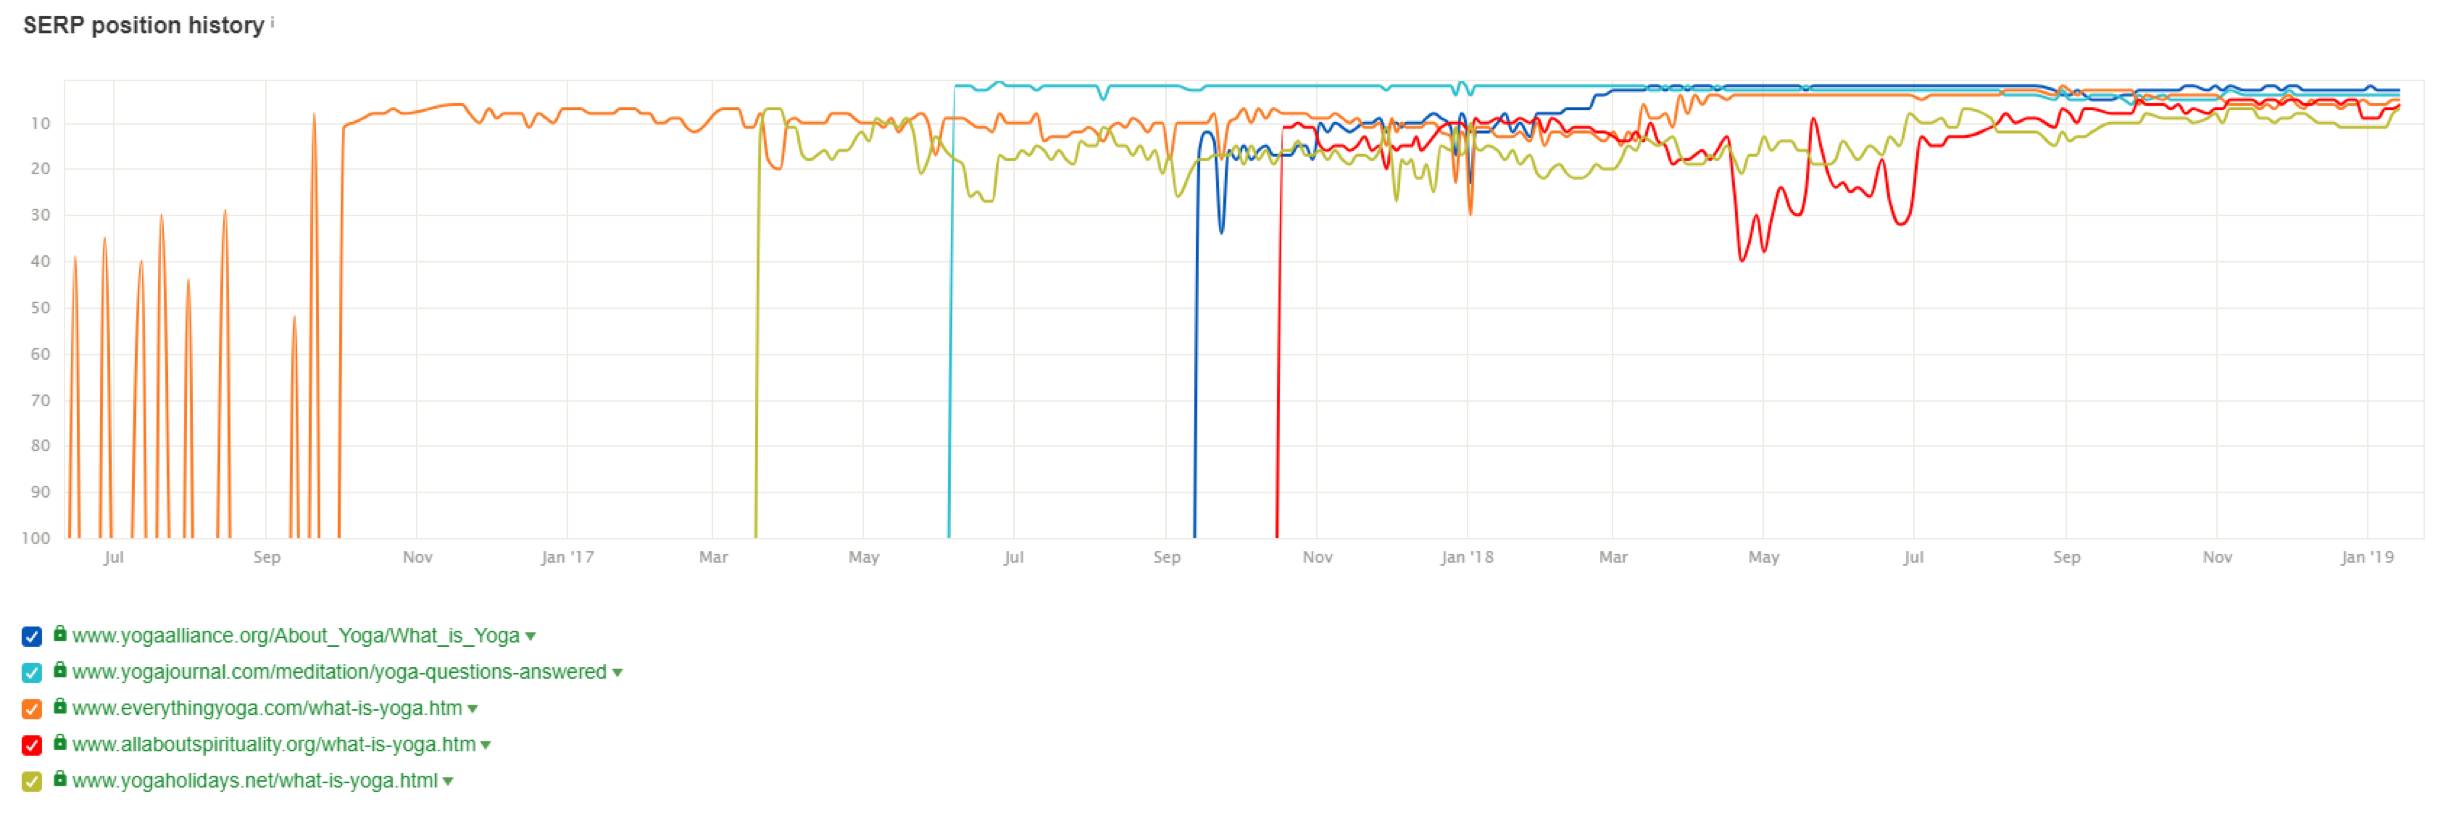 serp position history